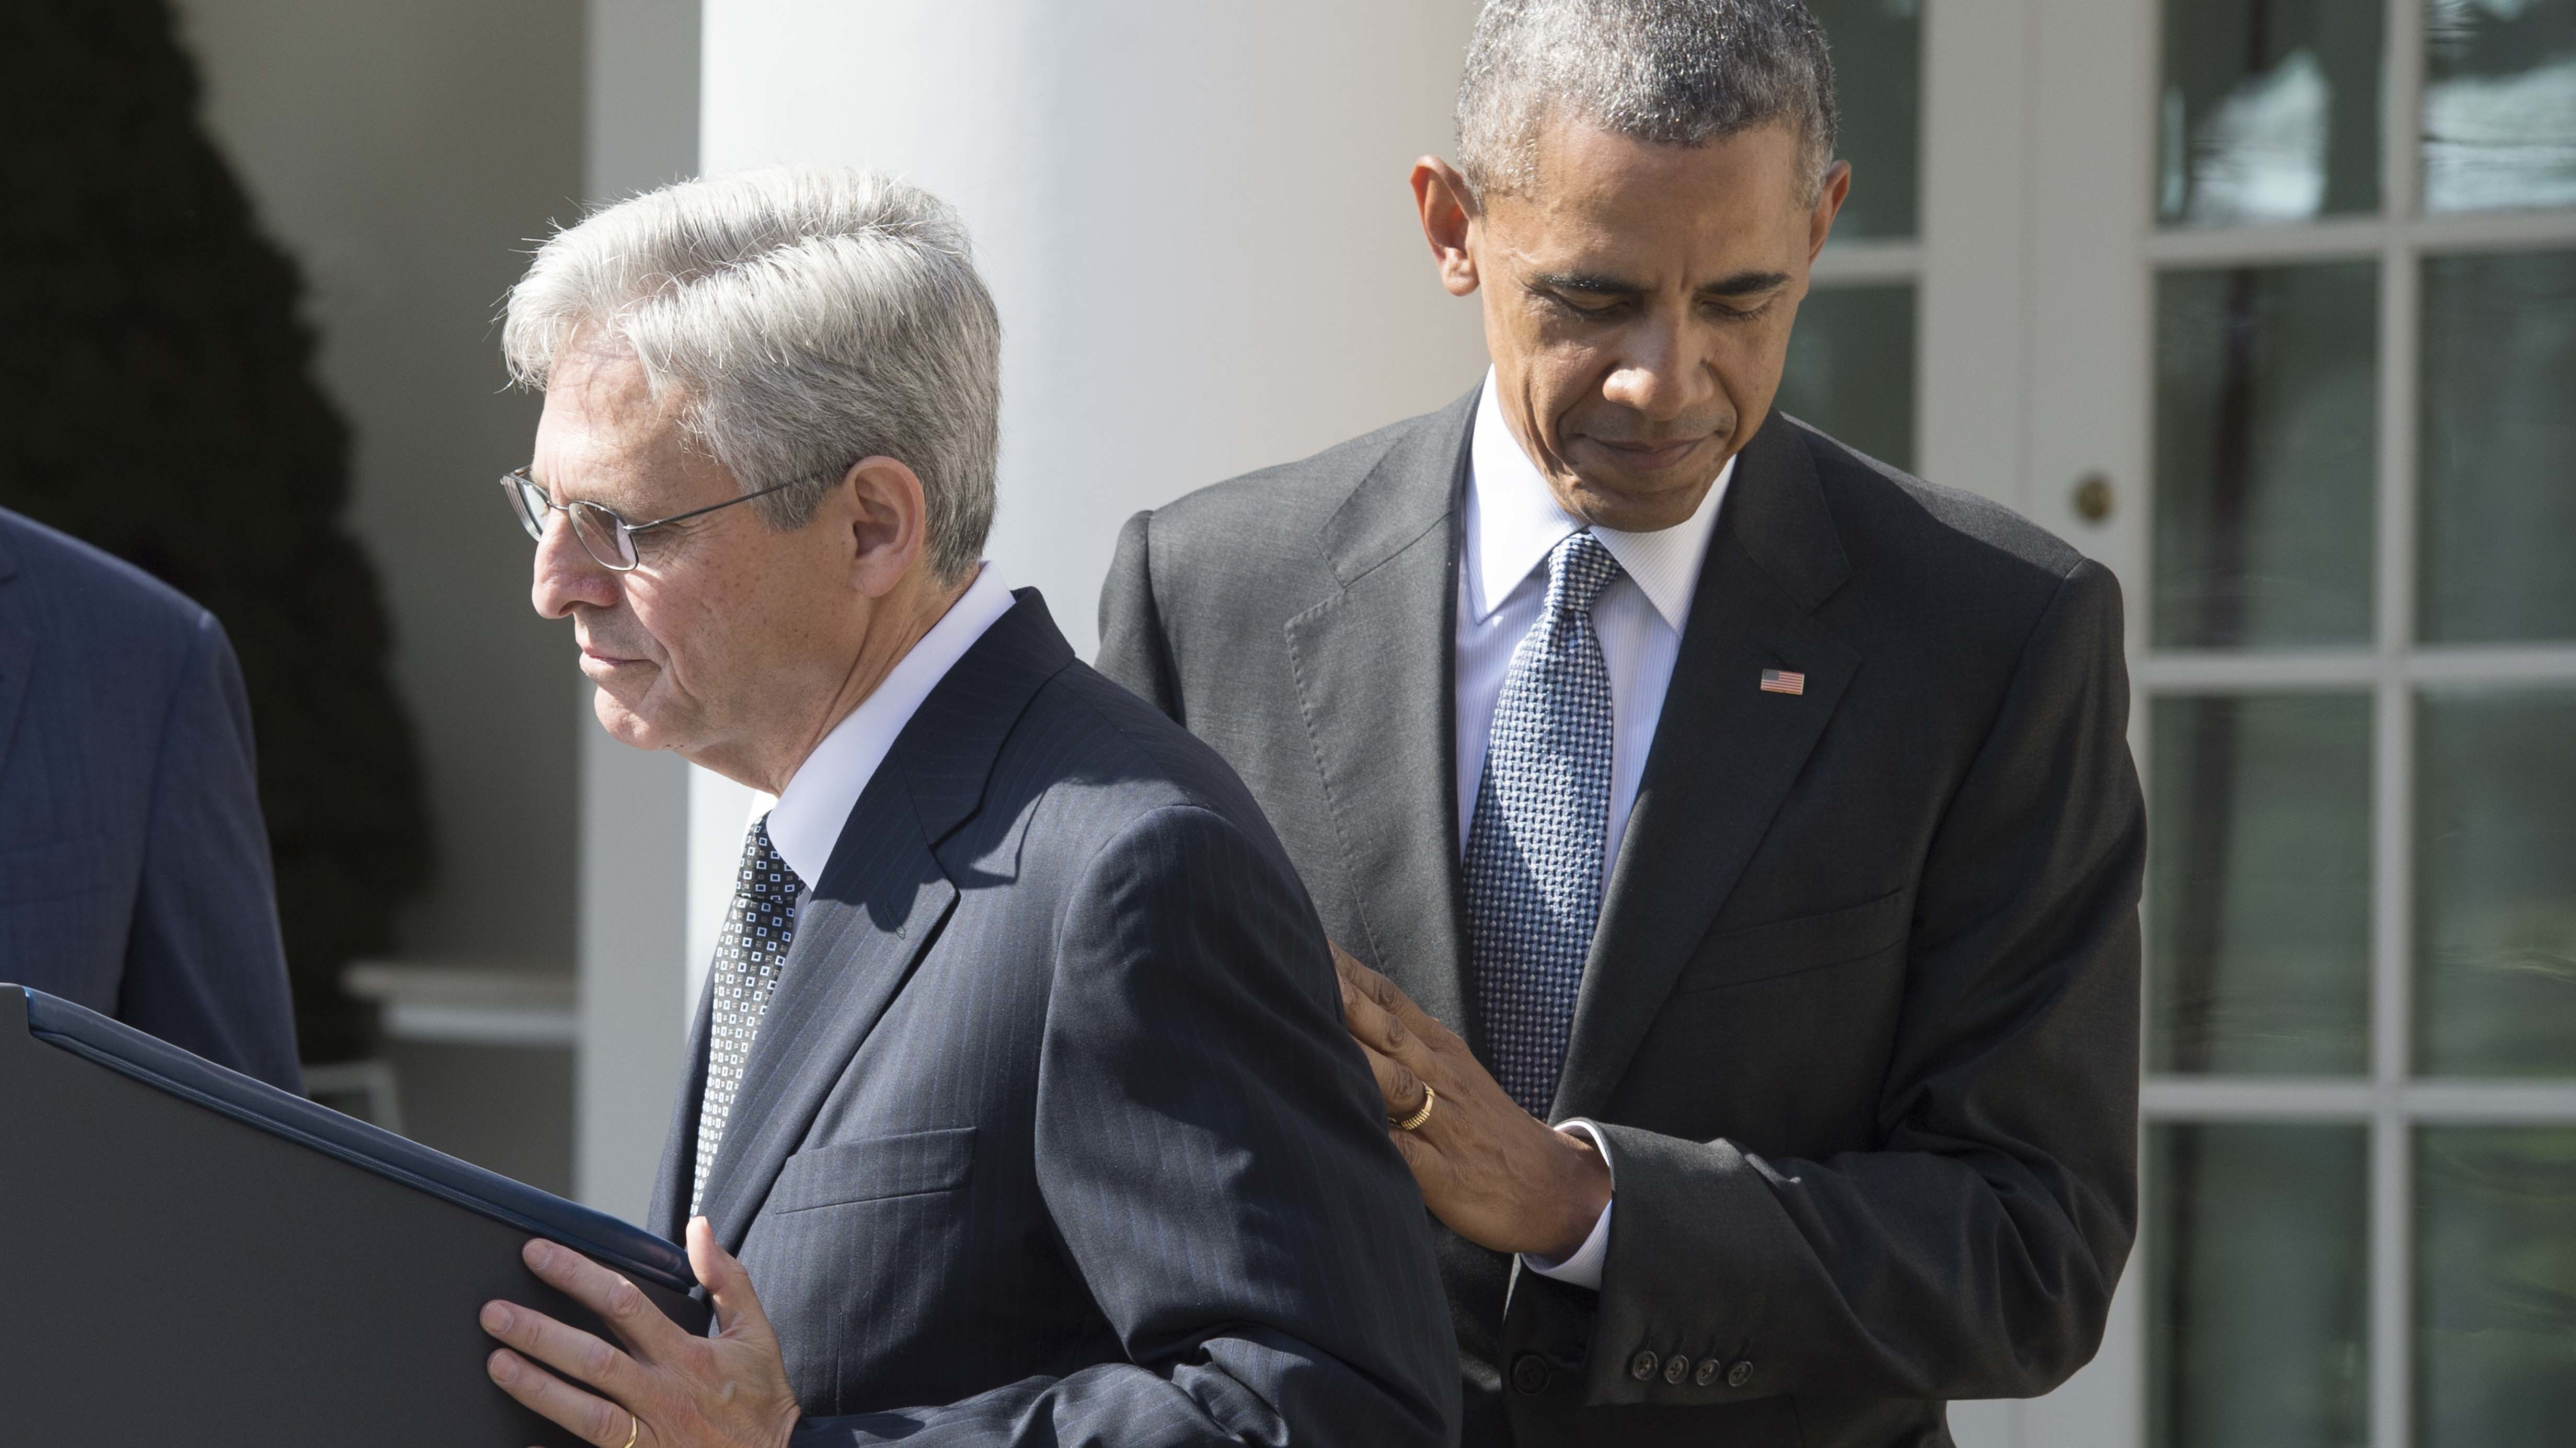 Here's What Green Groups Are Saying About Supreme Court Nominee Merrick Garland